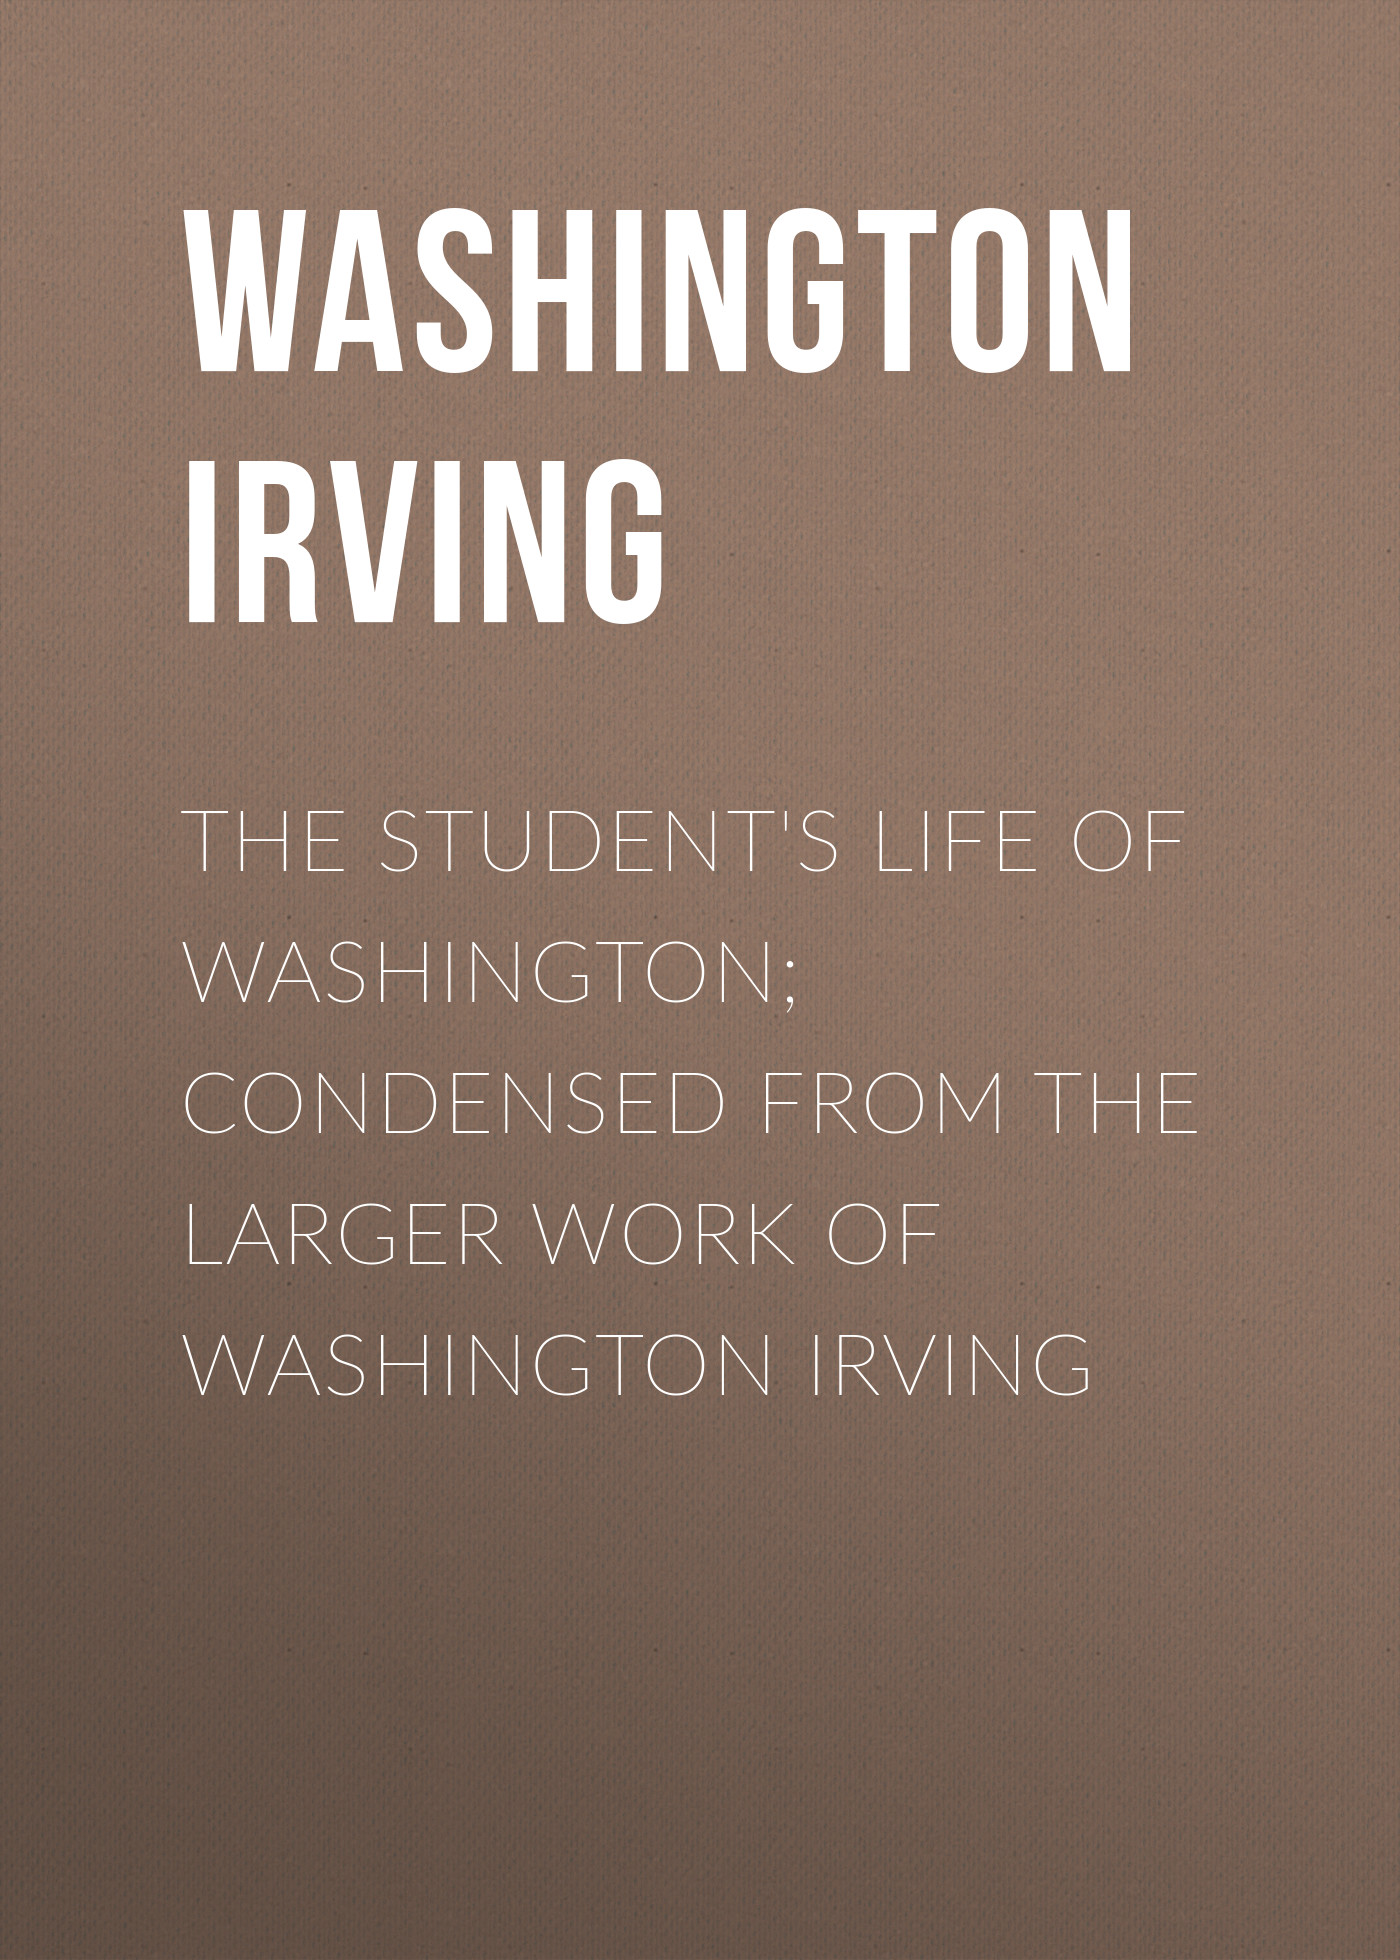 Вашингтон Ирвинг The Student's Life of Washington; Condensed from the Larger Work of Washington Irving washington irving wolfert s roost and miscellanies